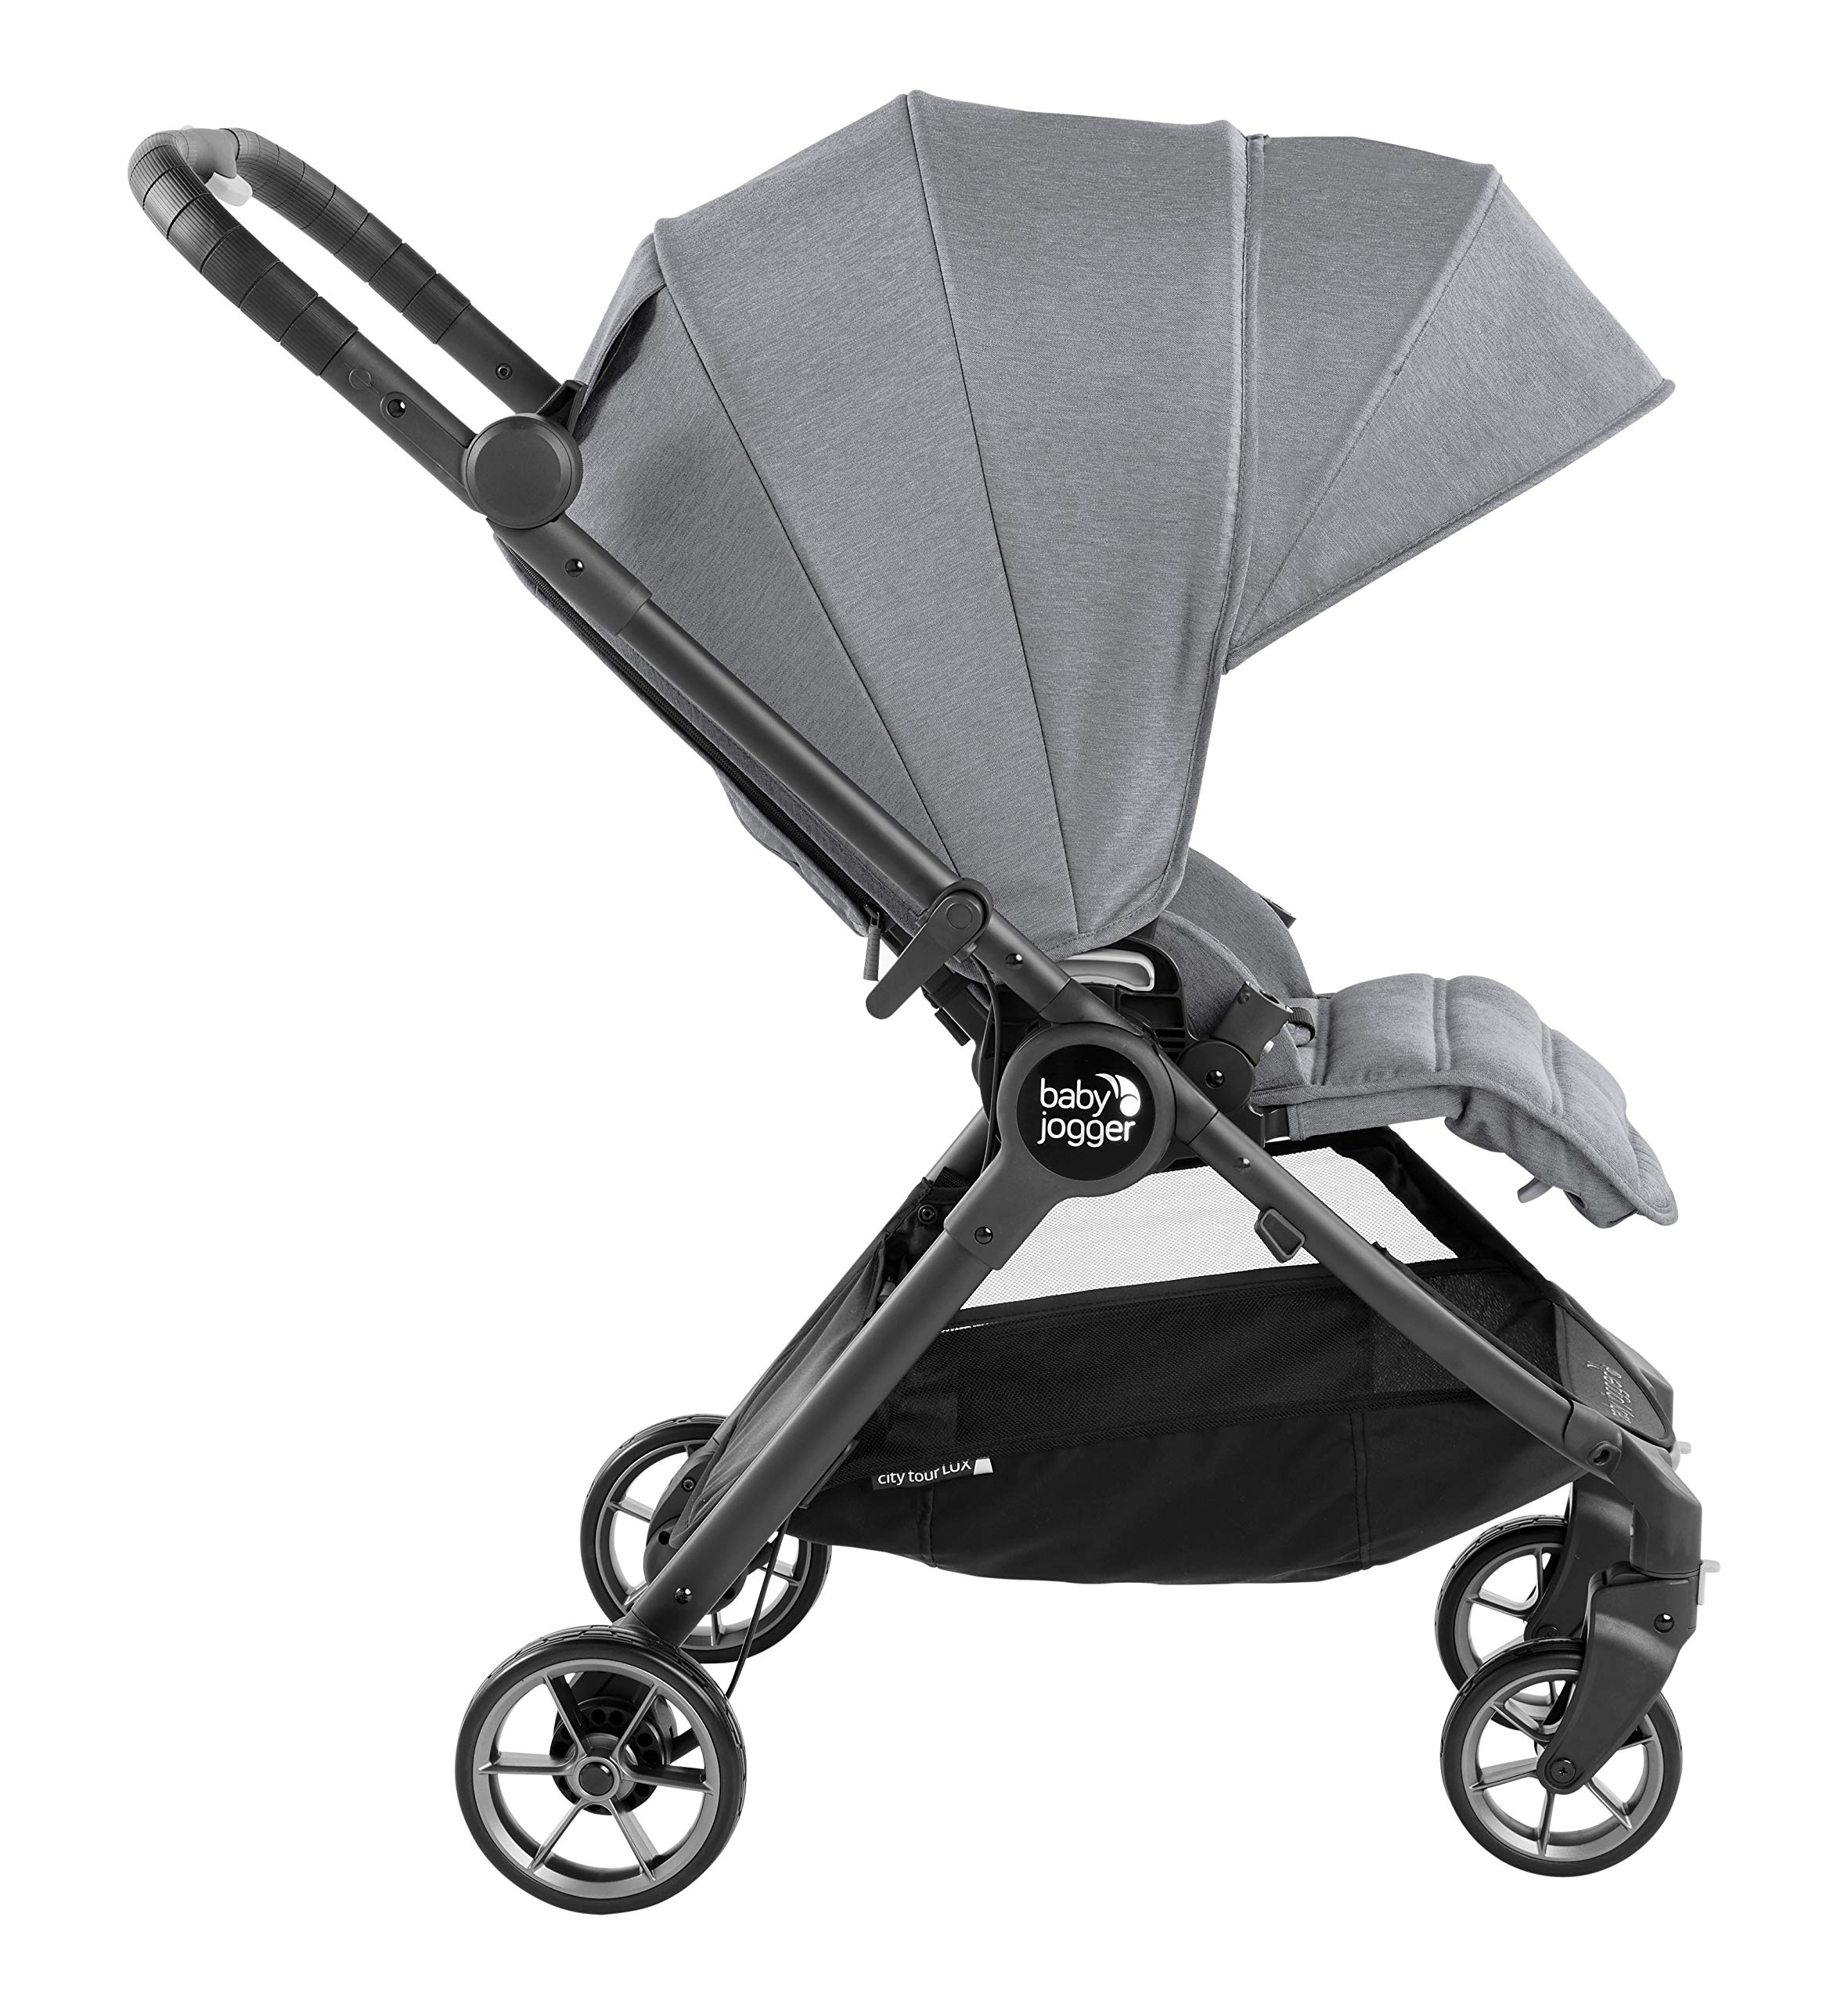 Baby Jogger City Tour LUX Compact Fold Reversible Stroller, Slate Baby Jogger The city tour lux and has a reversible from-birth seat unit for rear or forward travel Features an ultra-compact one hand fold and auto-lock when folded, allowing you to fold and go quickly. includes a carry bag and integrated carry strap a for easy transport With a flip flop friendly hand brake, lightweight and durable pu tyres and all wheel suspension to help keep mum and baby comfortable on many terrains 3